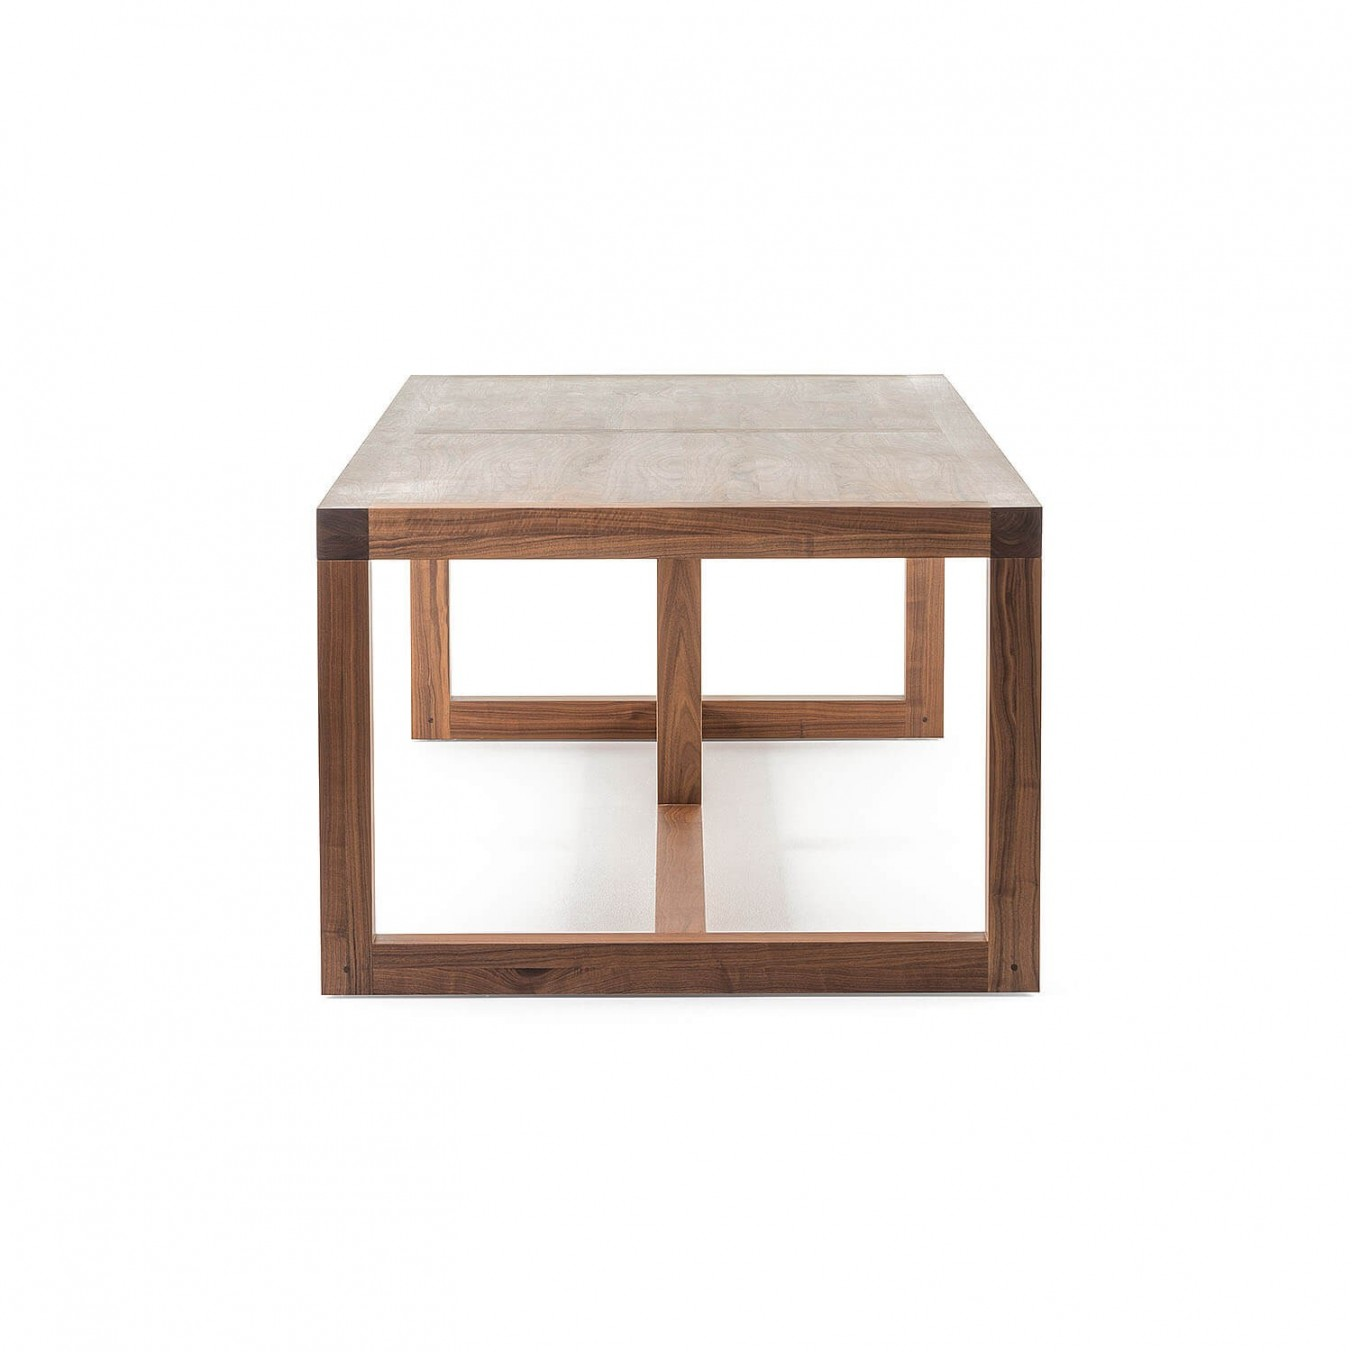 STRUCTURE TABLE